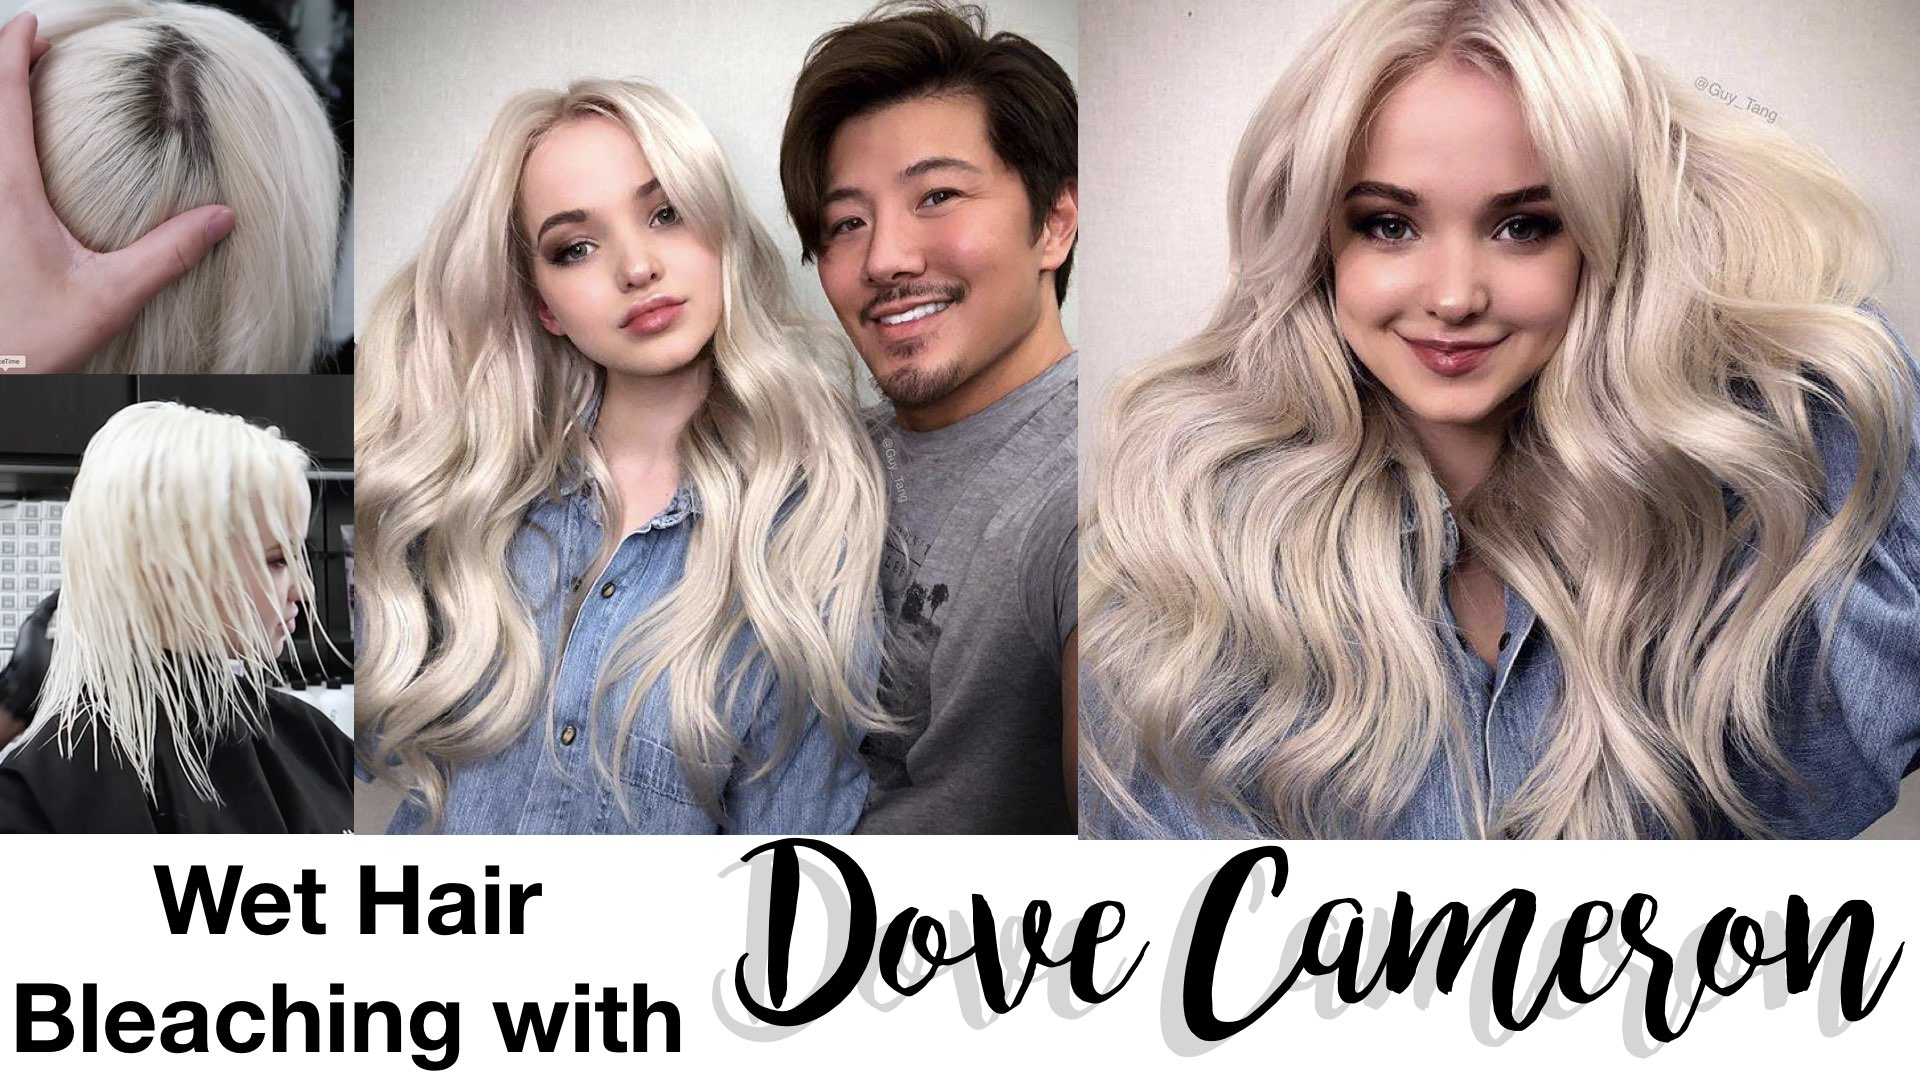 Guy Tang On Twitter Quot Wet Hair Bleach With Dovecameron